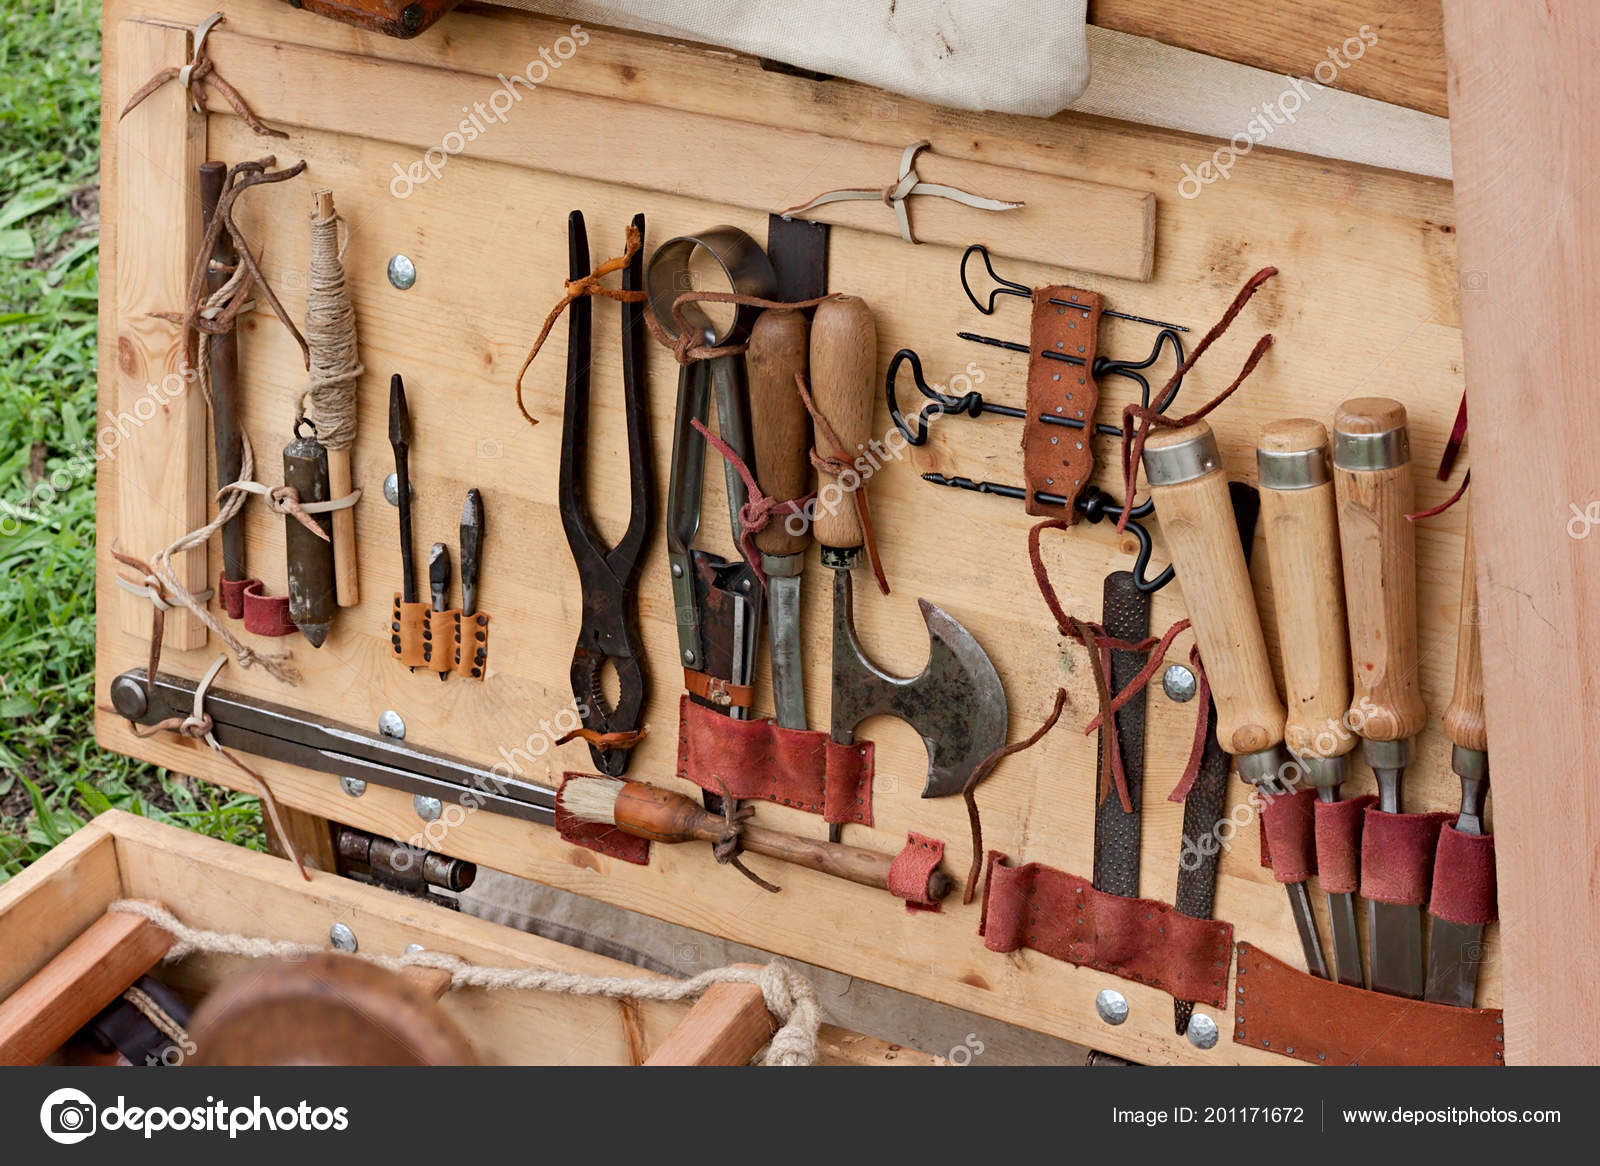 Woodworking Tools Antique Joinery Old Equipment Wood Craft